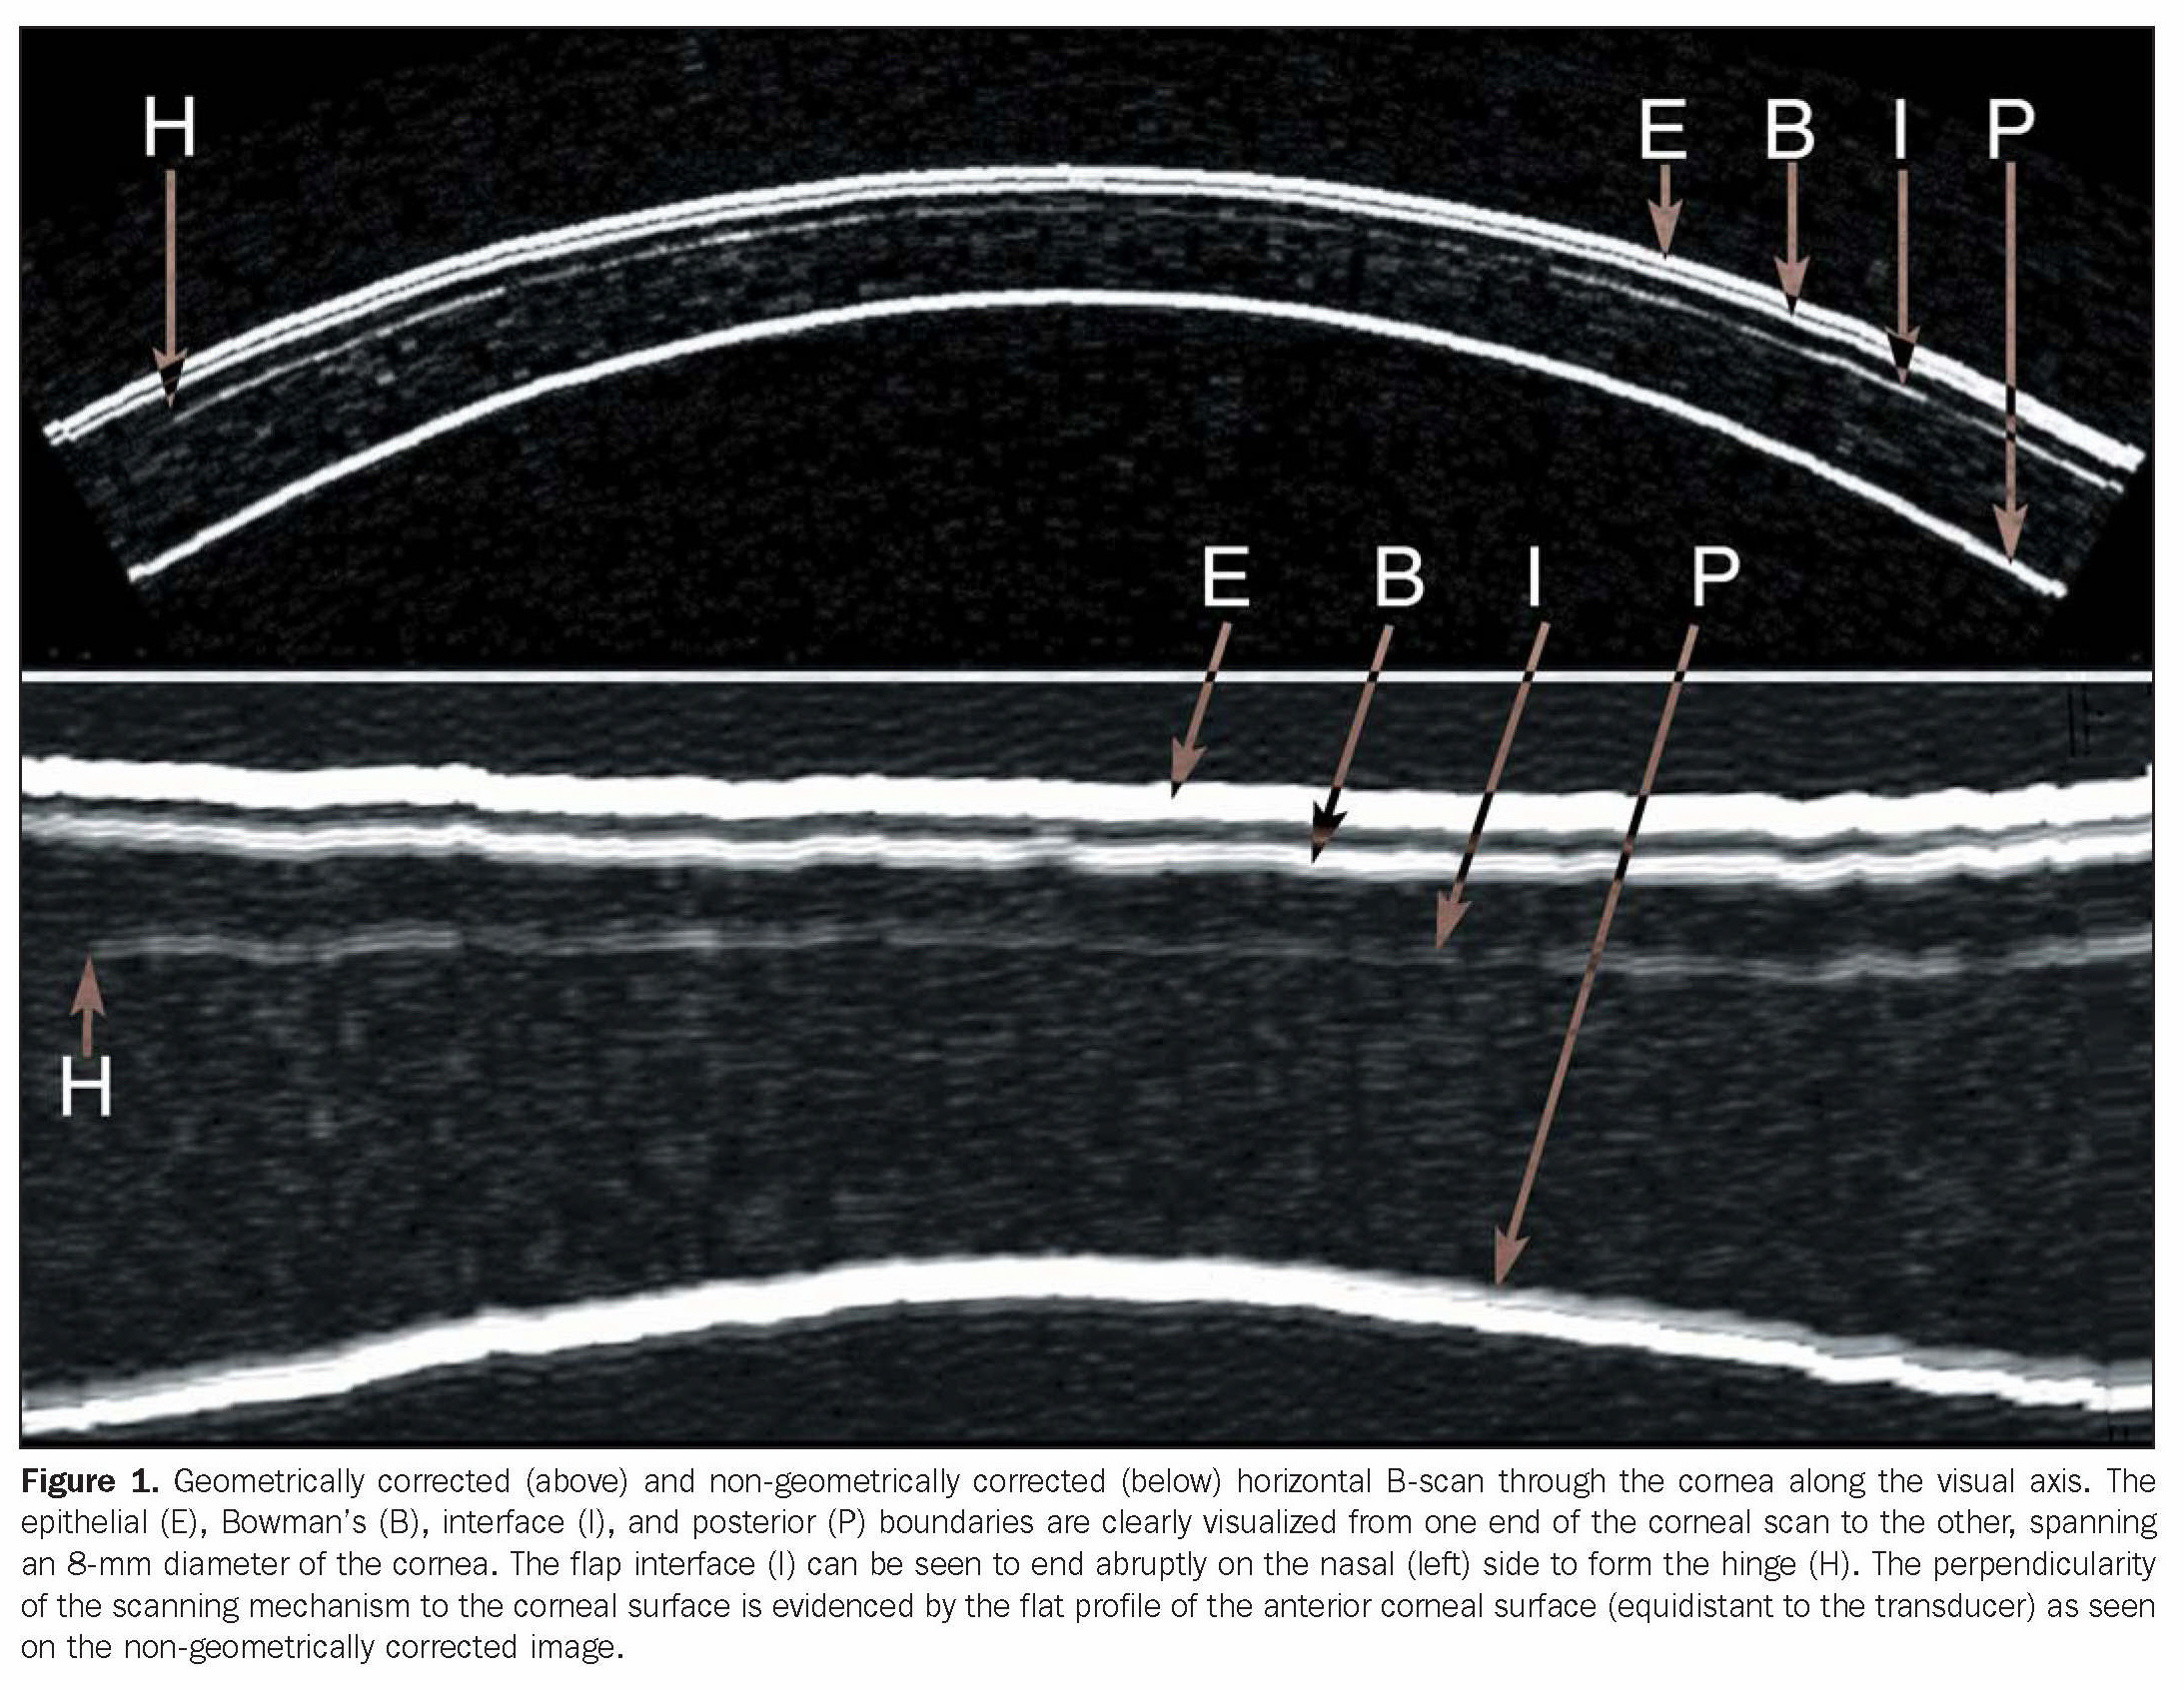 Figure 1. Geometrically corrected (above) and non-geometrically corrected (below) horizontal B-scan through the cornea along the visual axis. The epithelial (E), Bowman's (B), interface (I), and posterior (P) boundaries are clearly visualized from one end of the corneal scan to the other, spanning an 8-mm diameter of the cornea. The flap interface (I) can be seen to end abruptly on the nasal (left) side to form the hinge (H). The perpendicularity of the scanning mechanism to the corneal surface is evidenced by the flat profile of the anterior corneal surface (equidistant to the transducer) as seen on the non-geometrically corrected image.